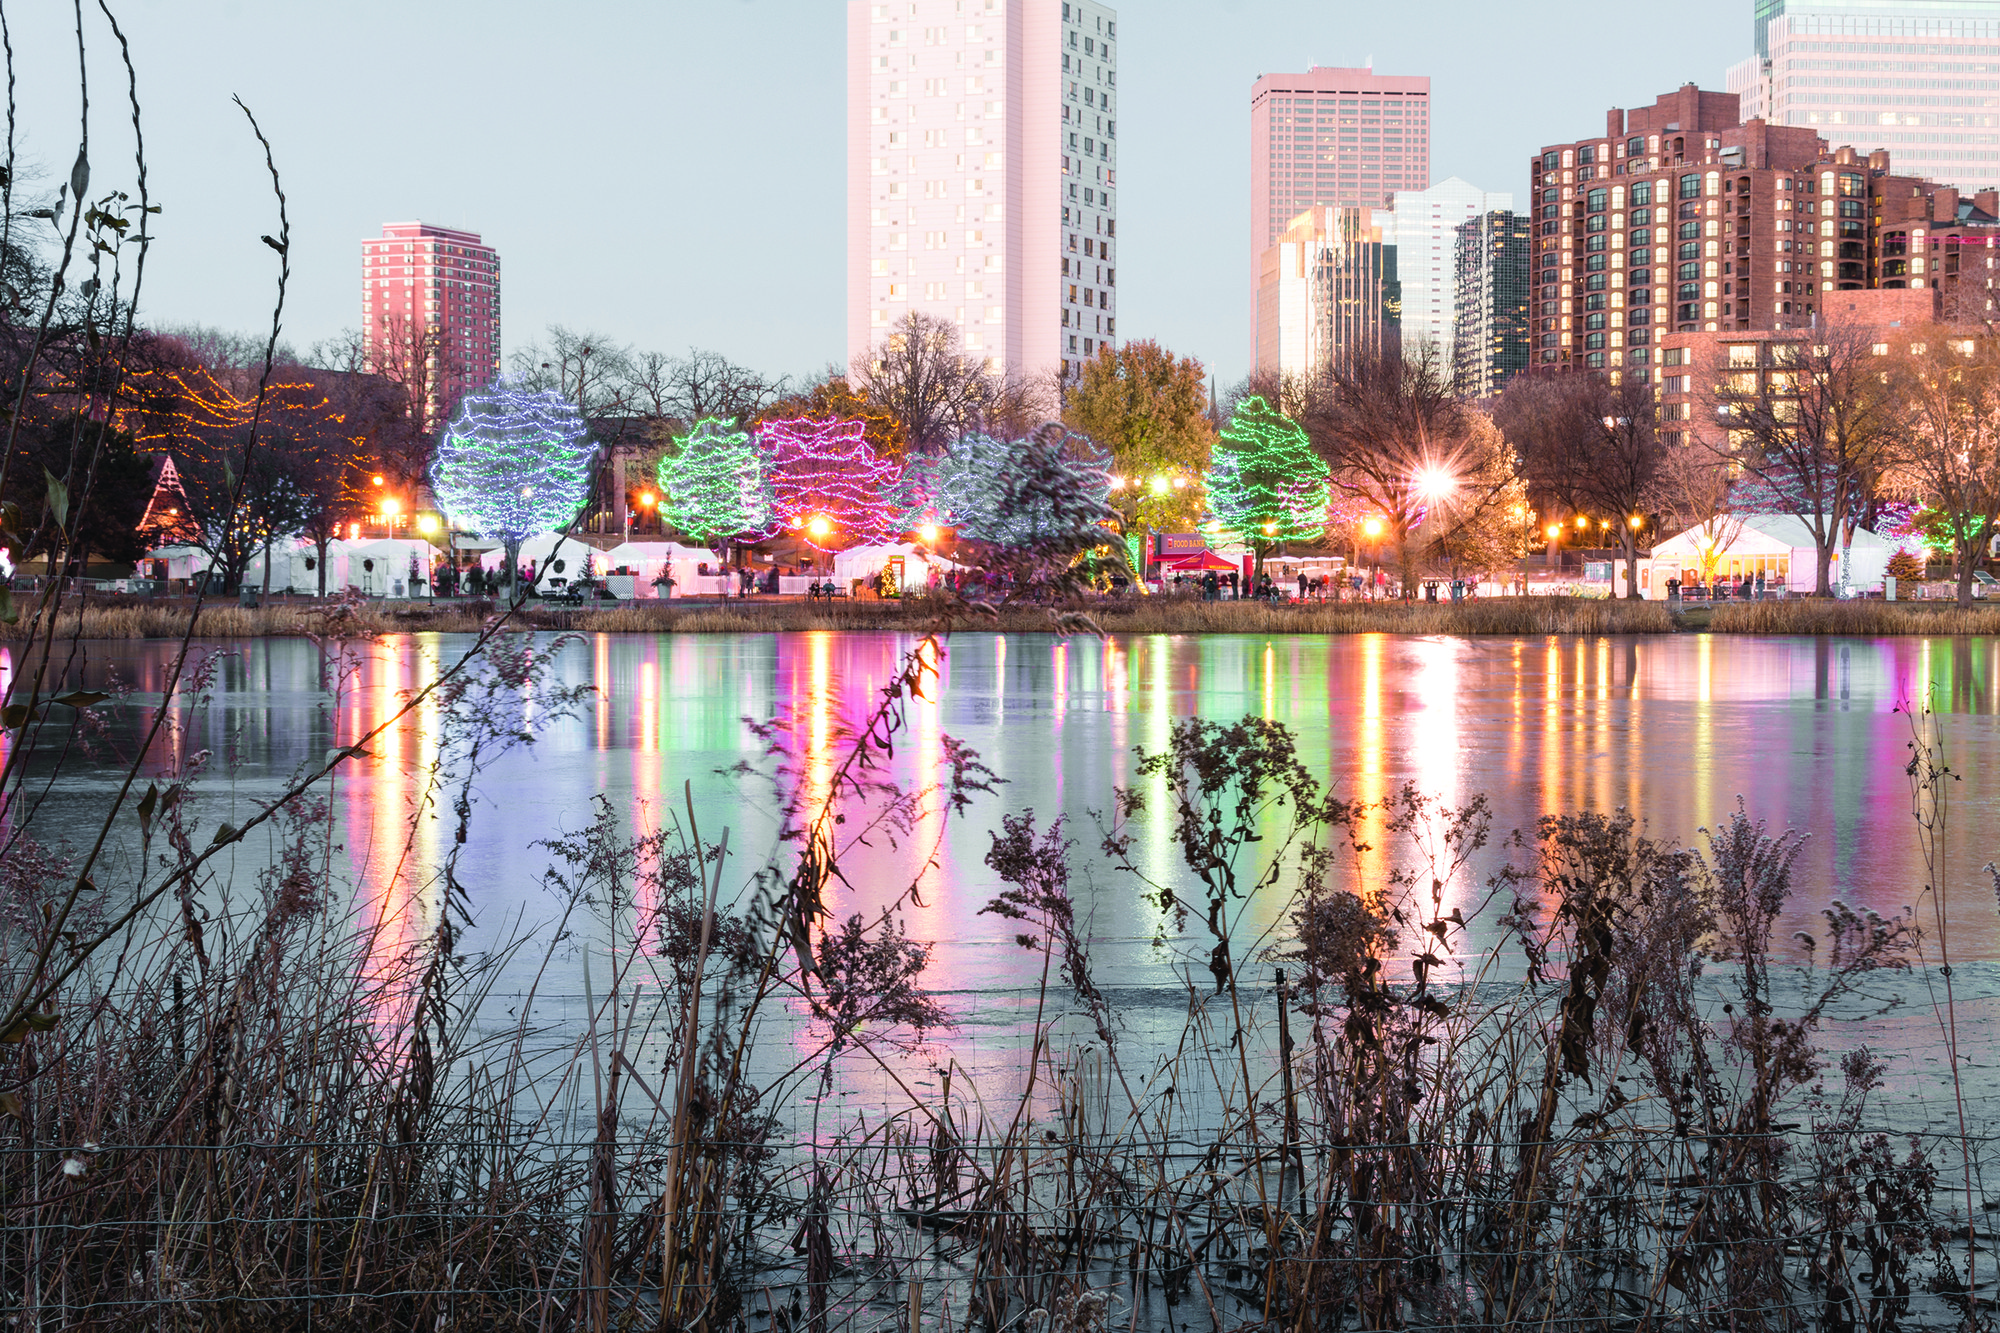 Holidazzle celebrates winter holidays in Loring Park